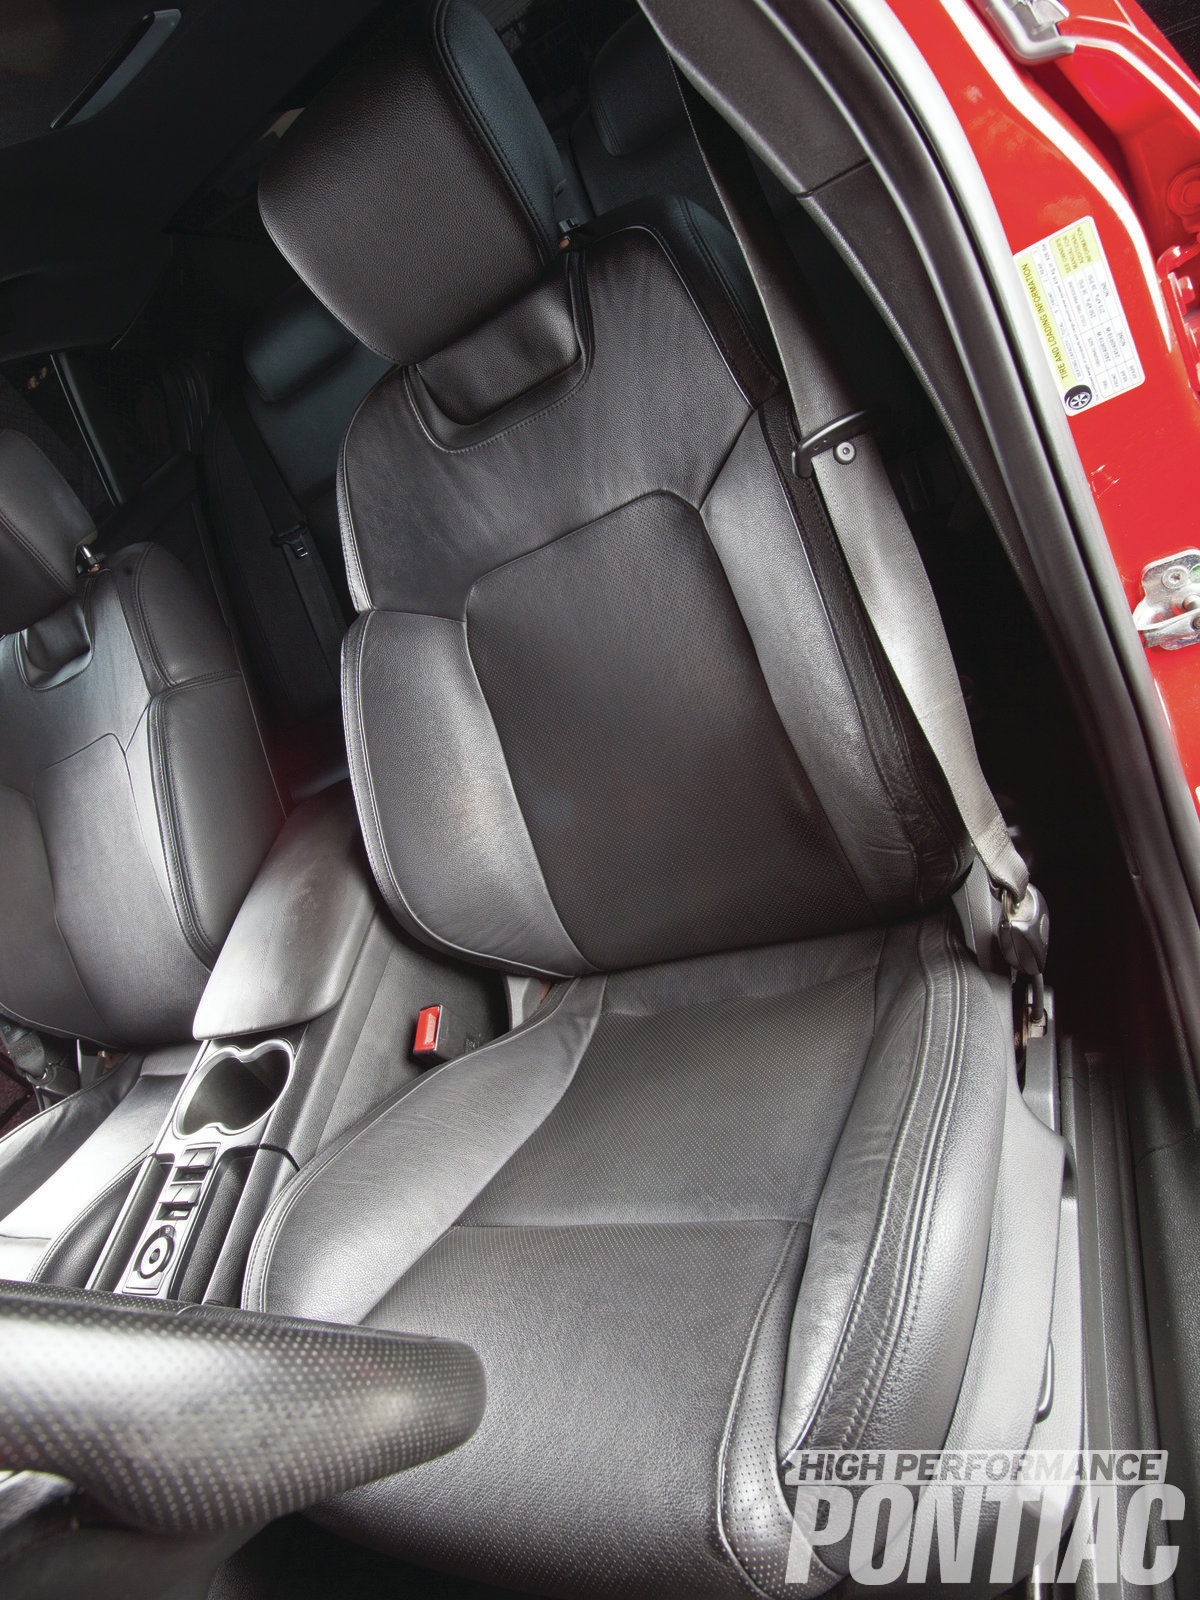 2008 Pontiac G8 Gt The Down Under Express Latest News Features Wheel Sensor Wiring Diagrams Seats